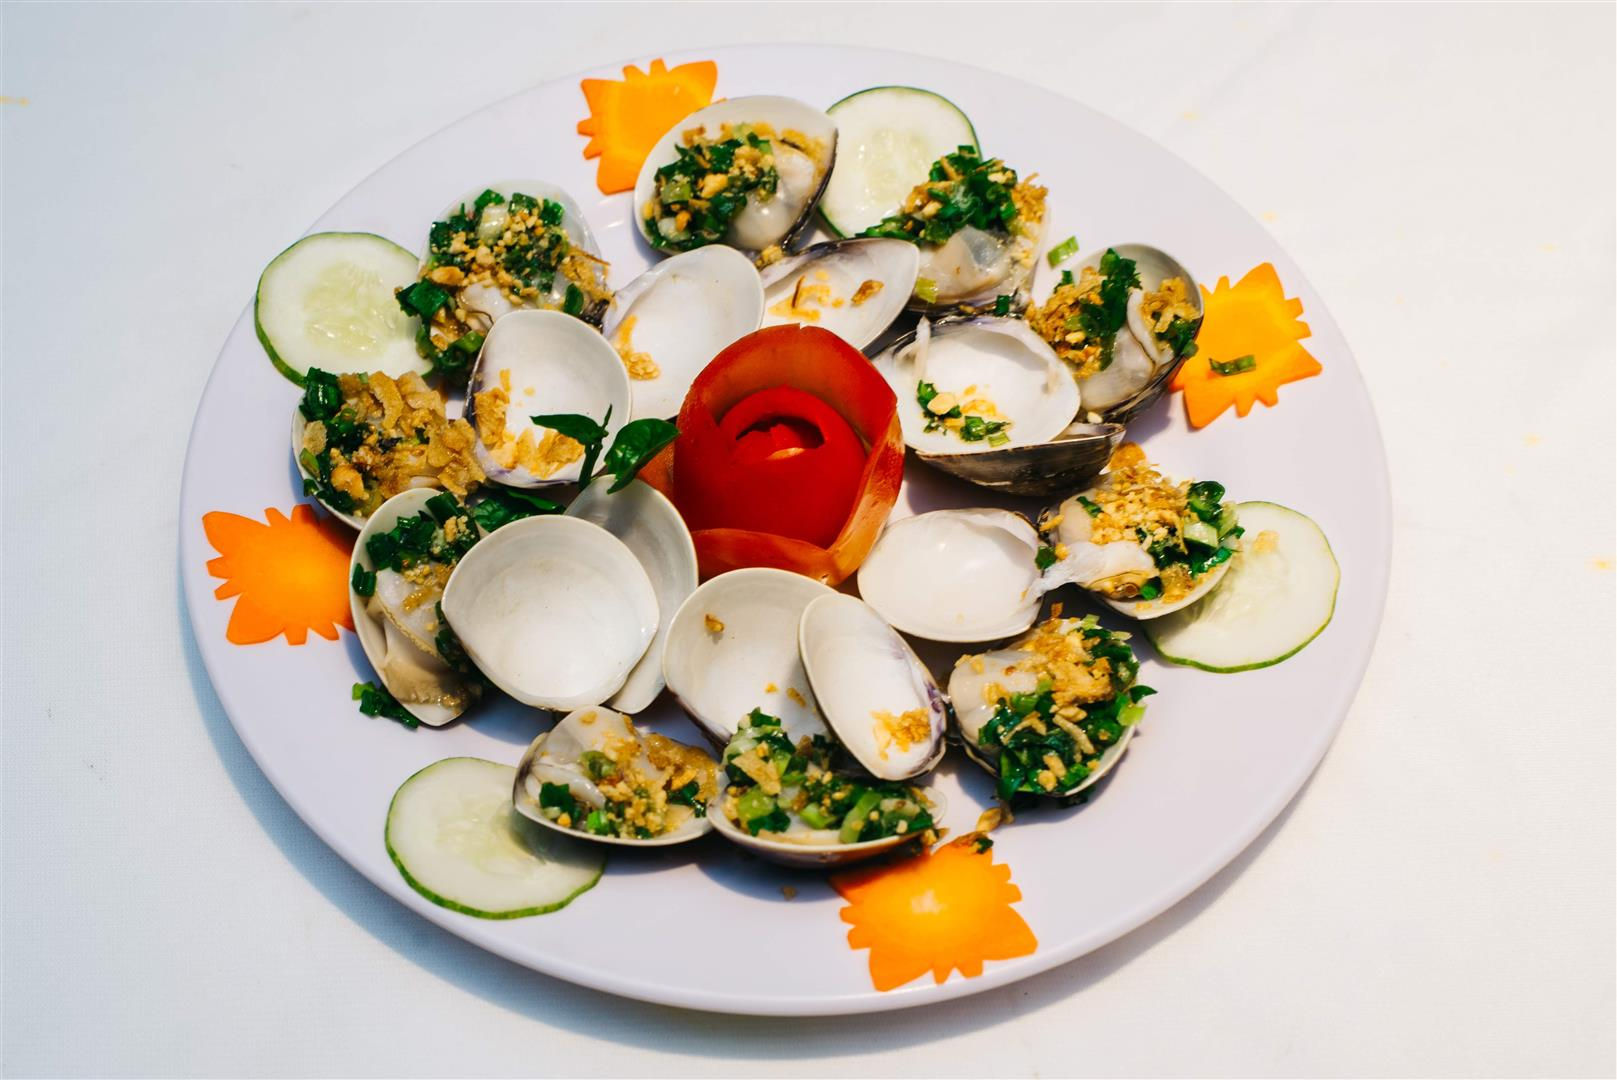 Nghêu Nướng Mở Hành / Clam Grilled with onion and oil